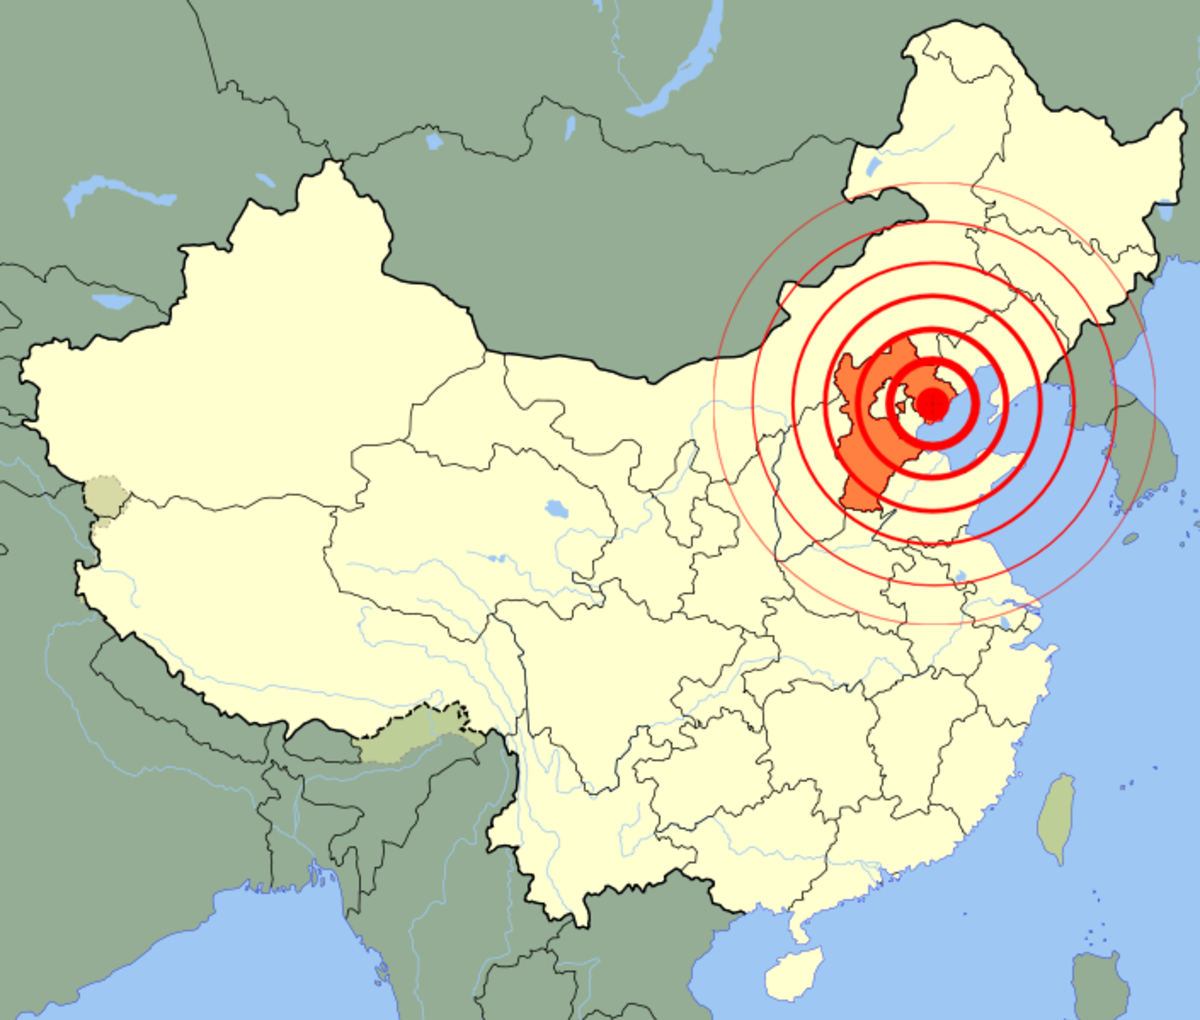 Red zone showing the epicenter of The Tangshan Earthquake.